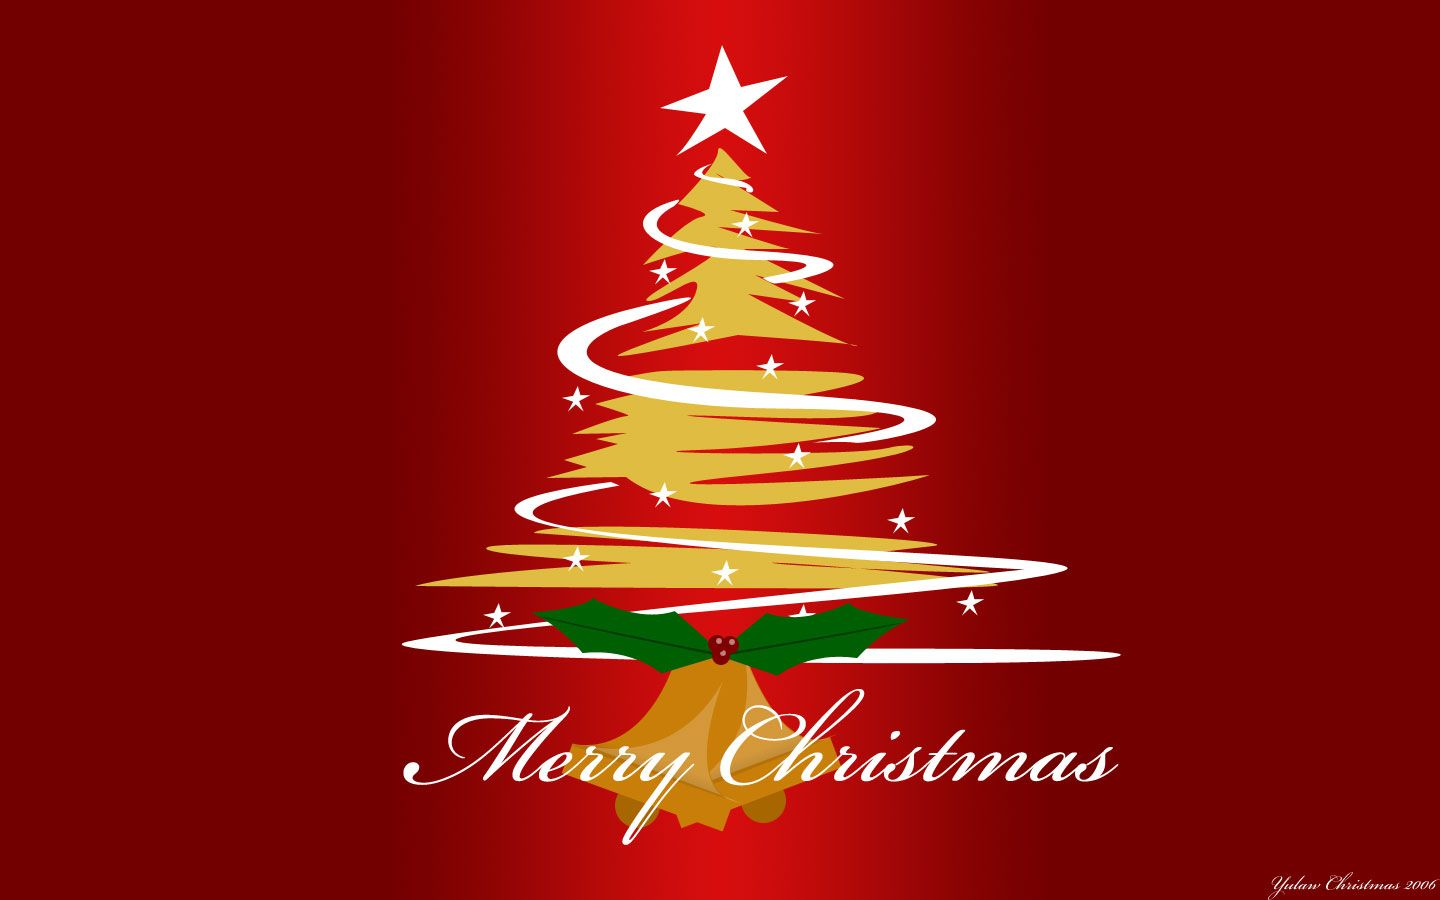 wishing all a very merry christmas from mcar rentals & leasing